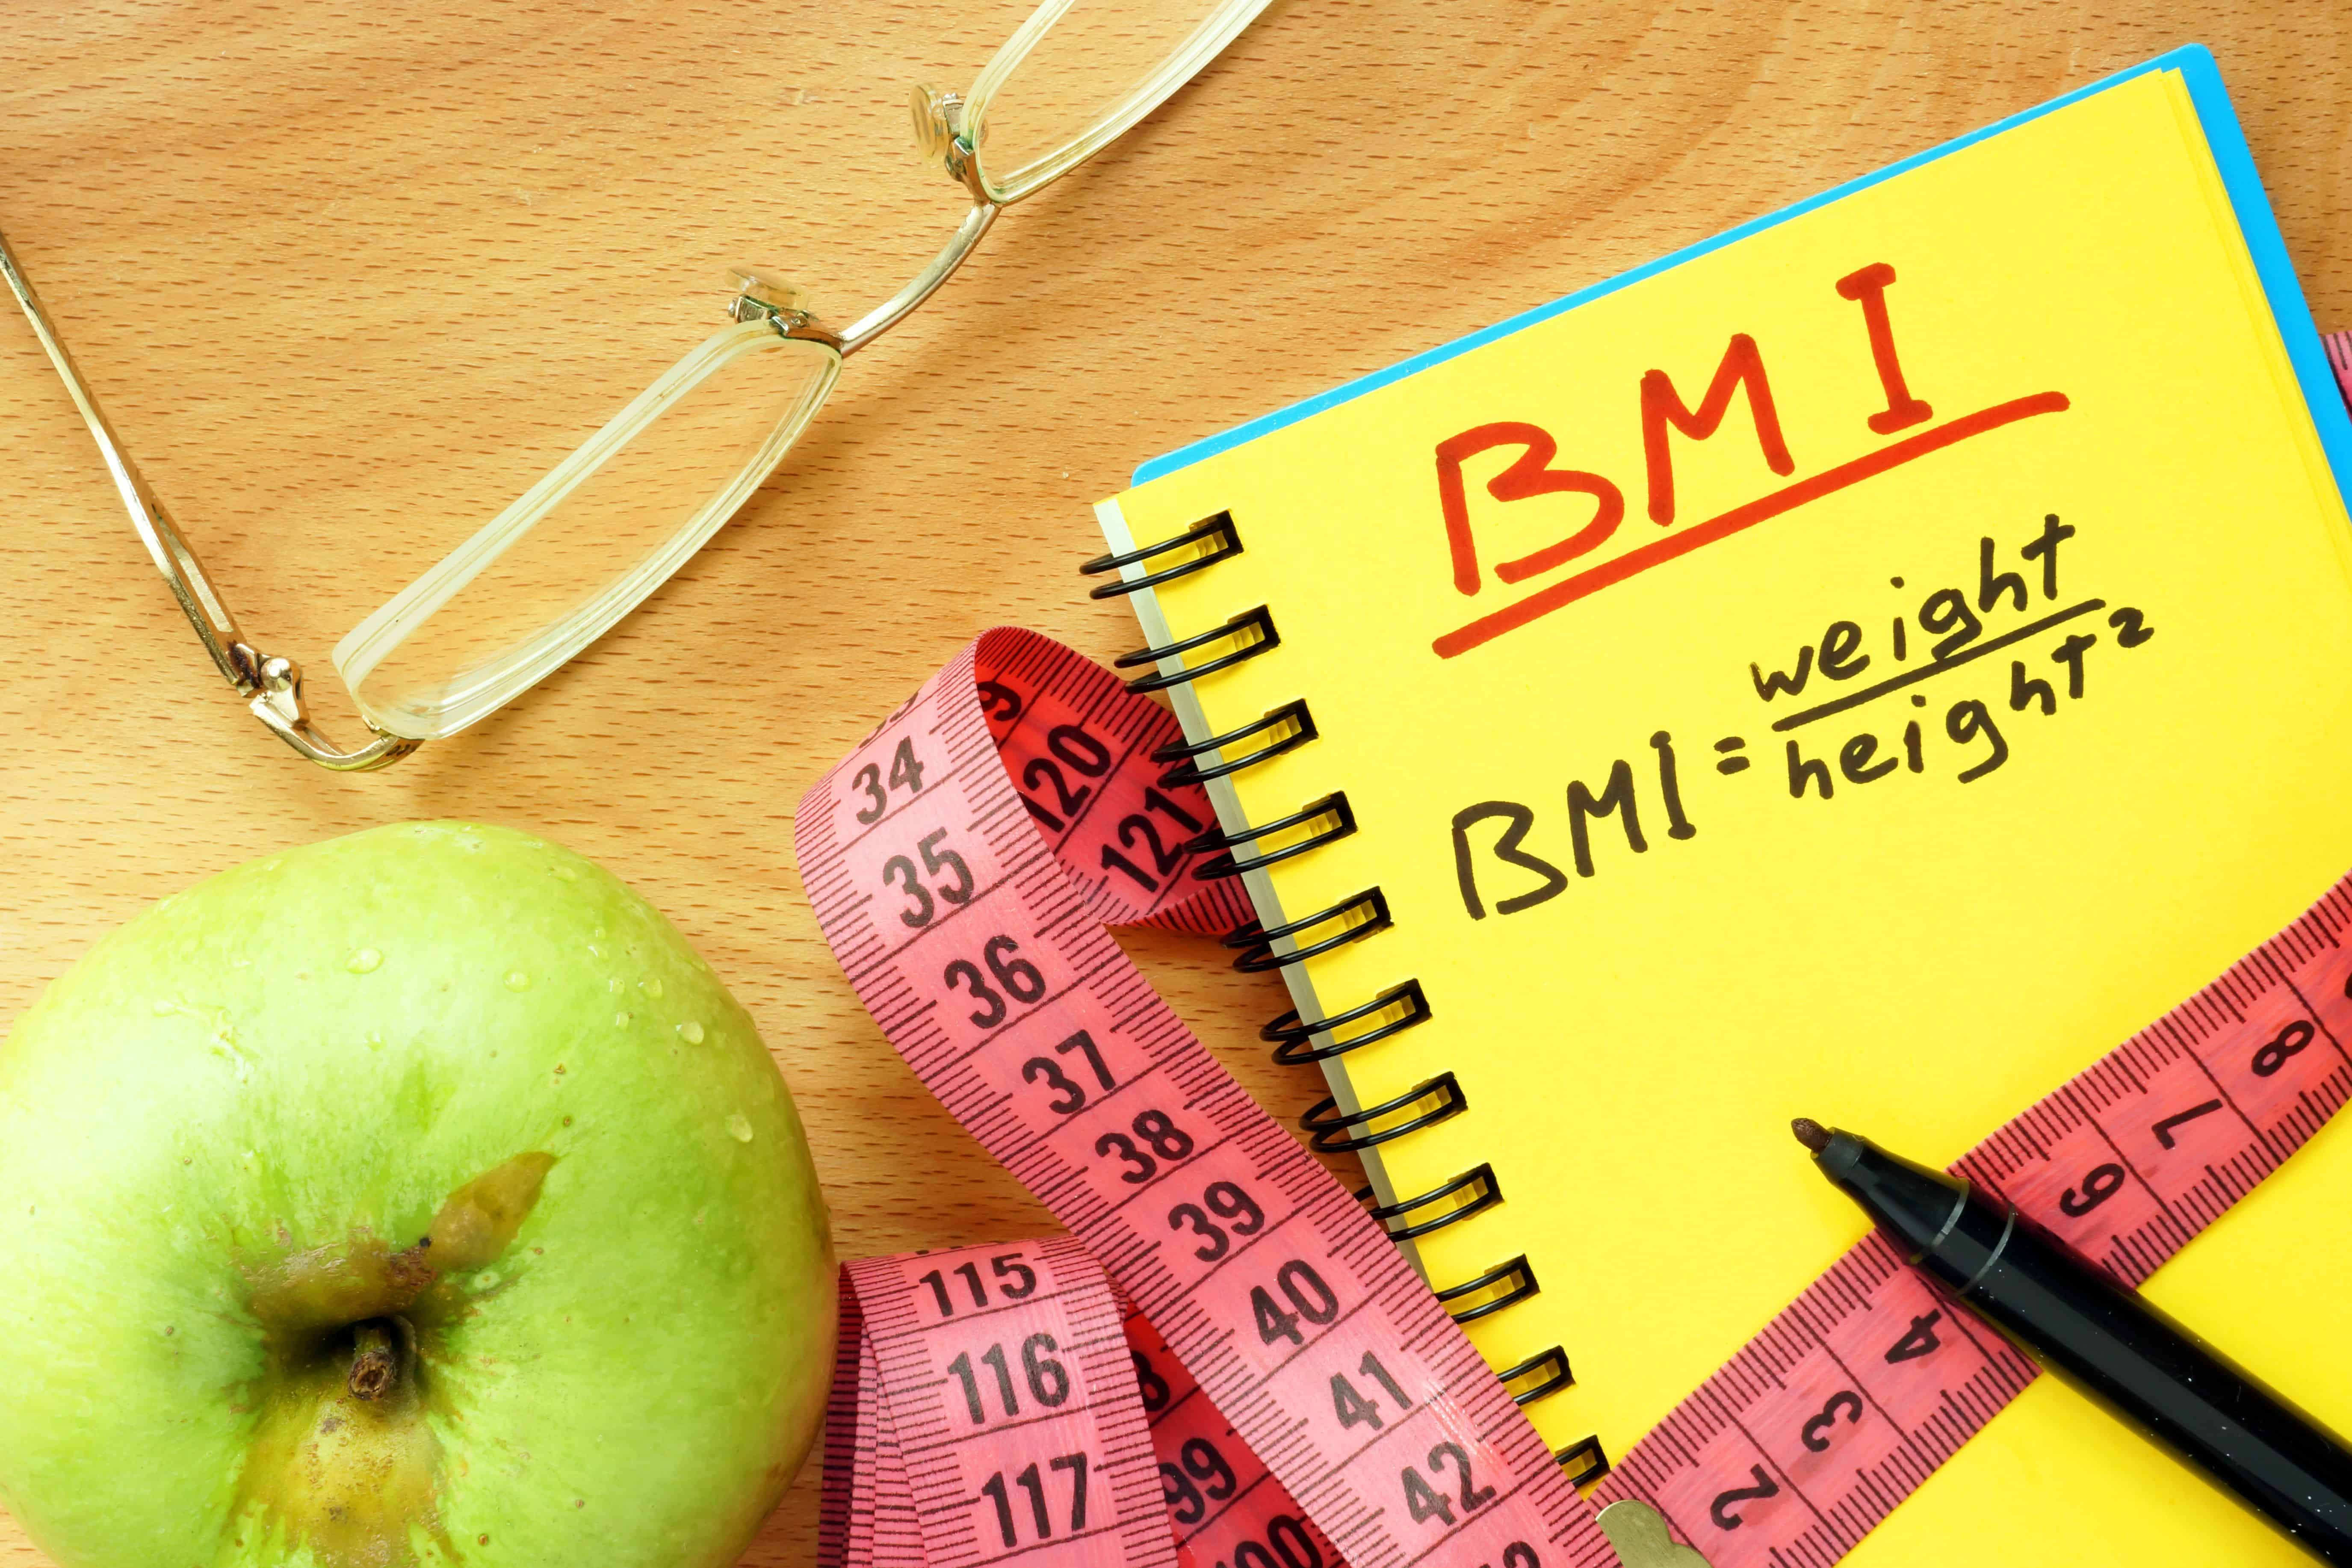 What information is needed to calculate the BMI for a female?